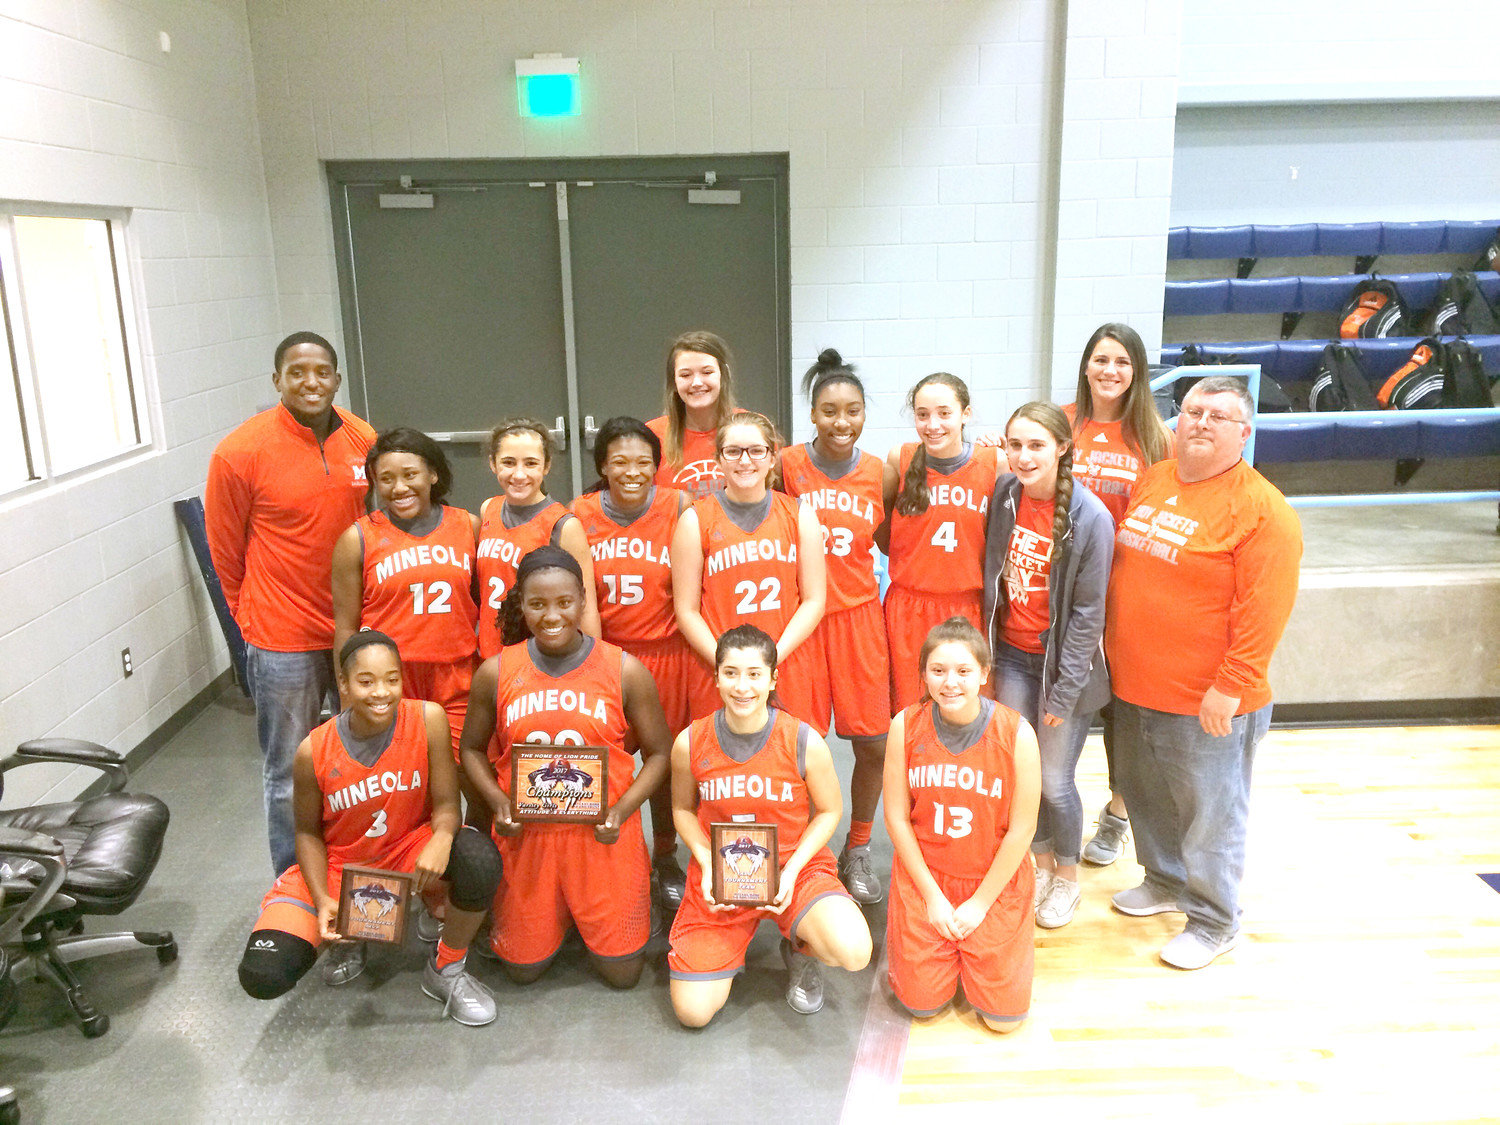 The Mineola Lady Jackets after winning the Union Grove Girls Varsity Tournament.